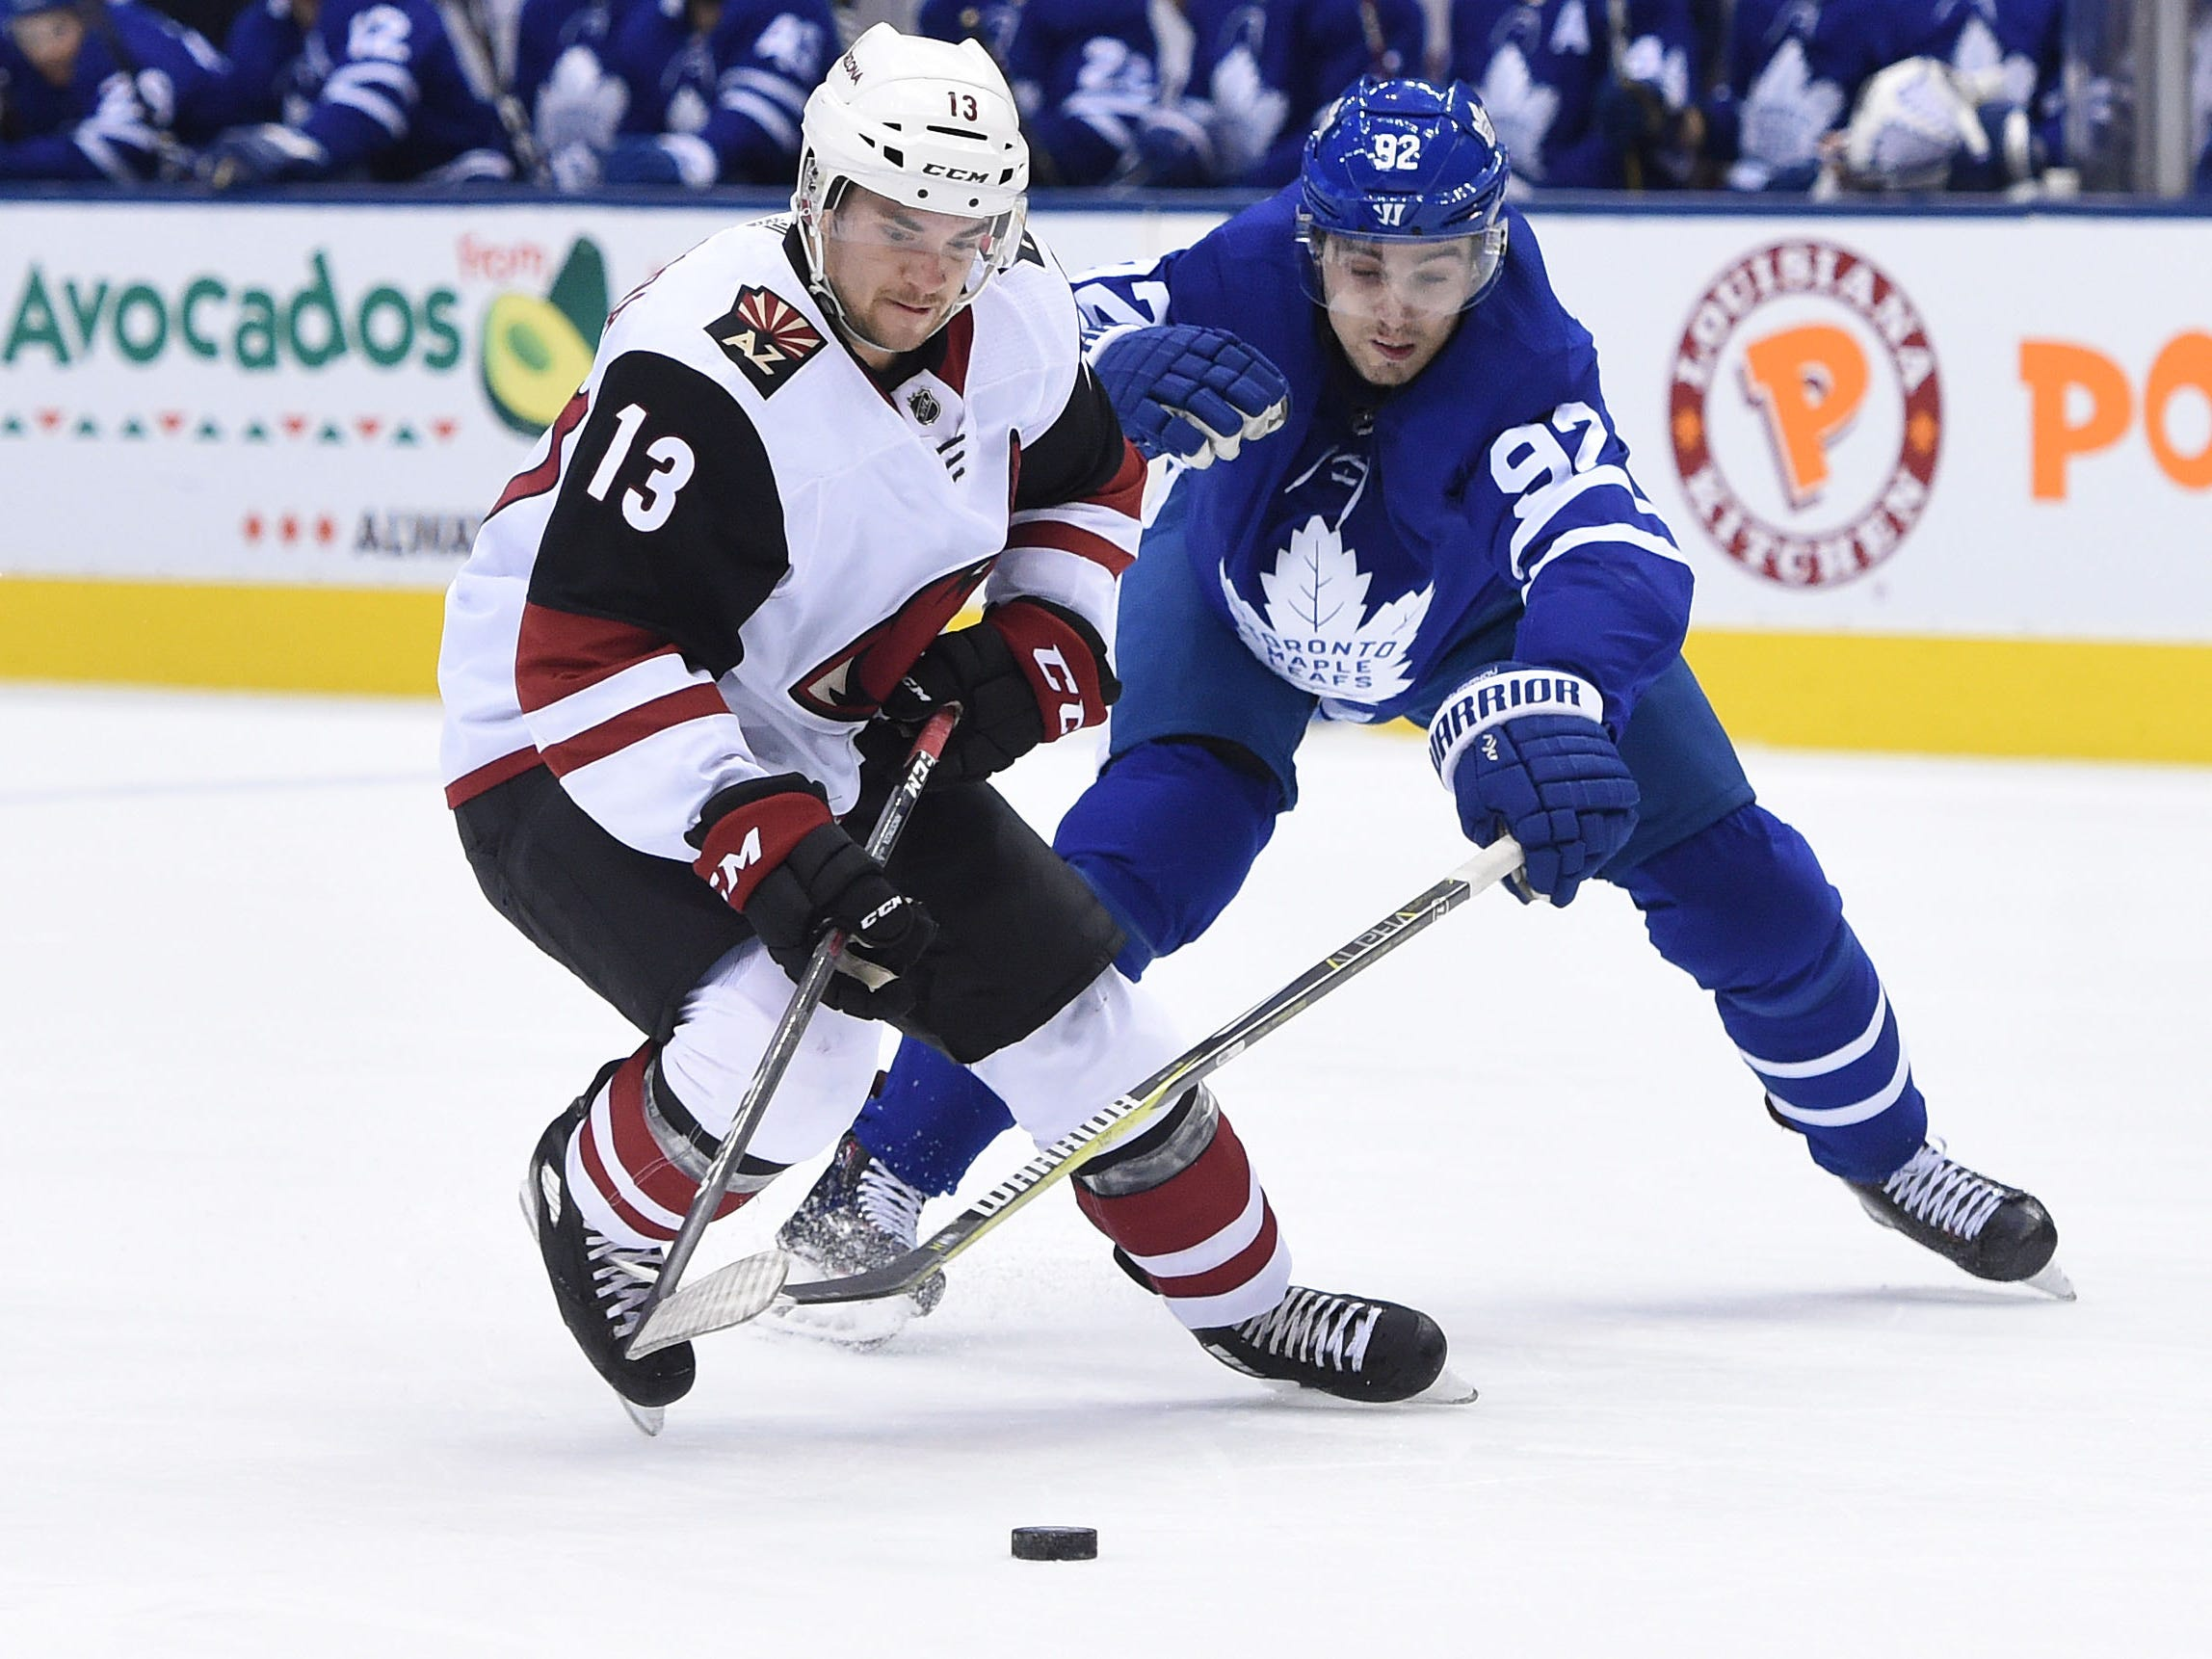 Jan 20, 2019: Arizona Coyotes forward Vinnie Hinostroza (13) and Toronto Maple Leafs defenceman Igor Ozhiganov (92) battle for the puck in the first period at Scotiabank Arena.